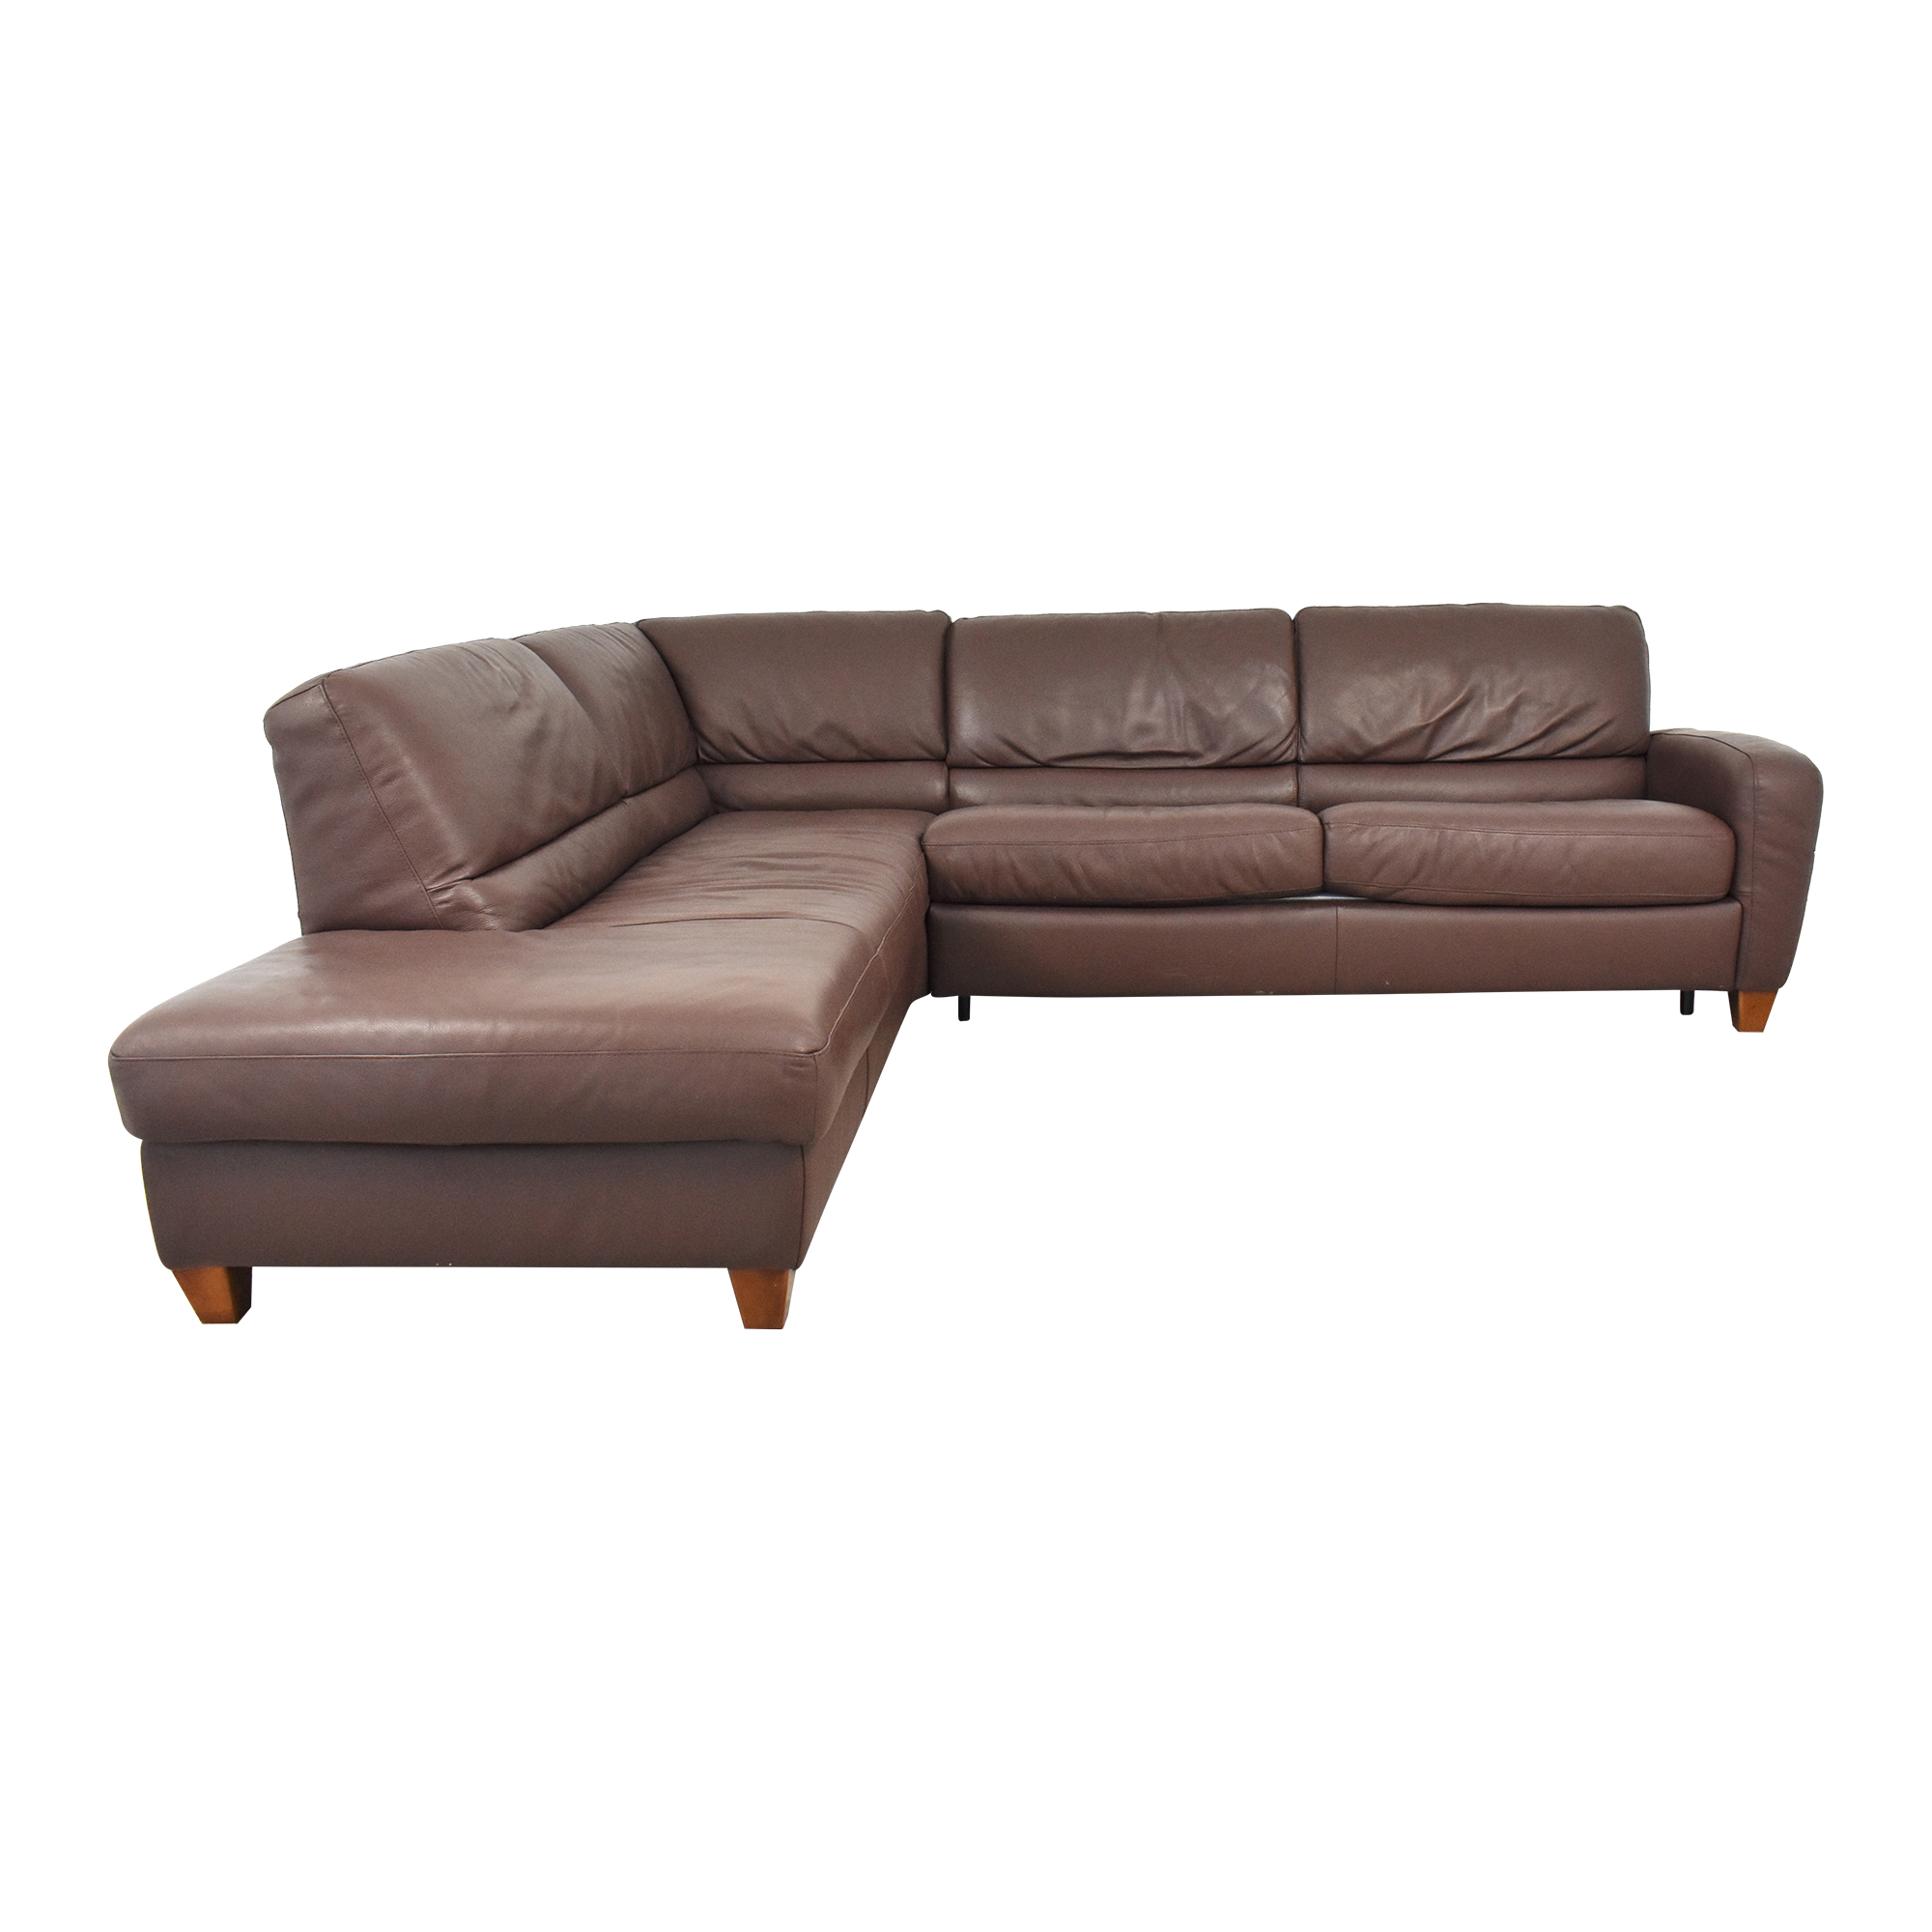 Italsofa Italsofa Renata Sectional Sleeper Sofa price